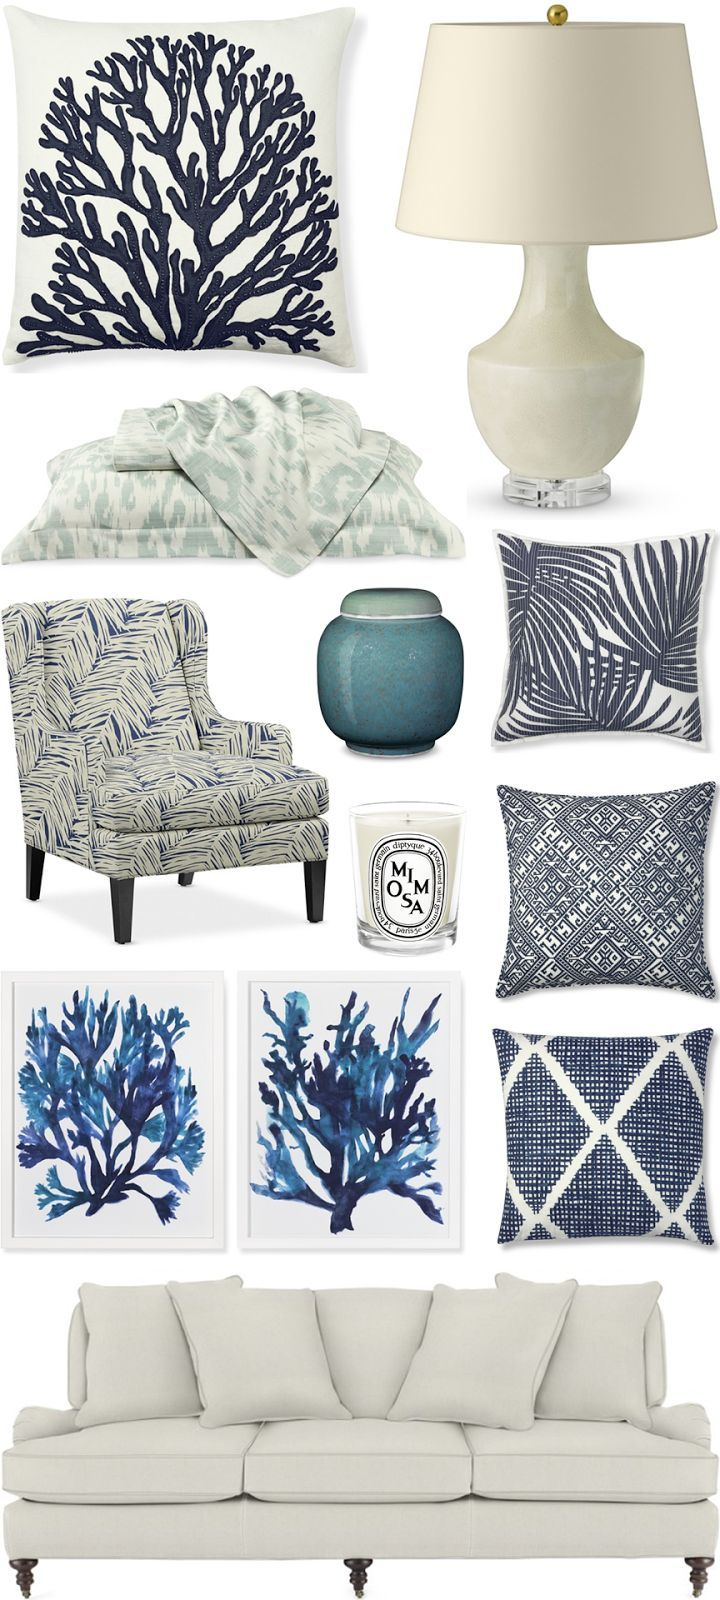 CHIC COASTAL LIVING: Beach Chic beach house home design @Williams-Sonoma Home